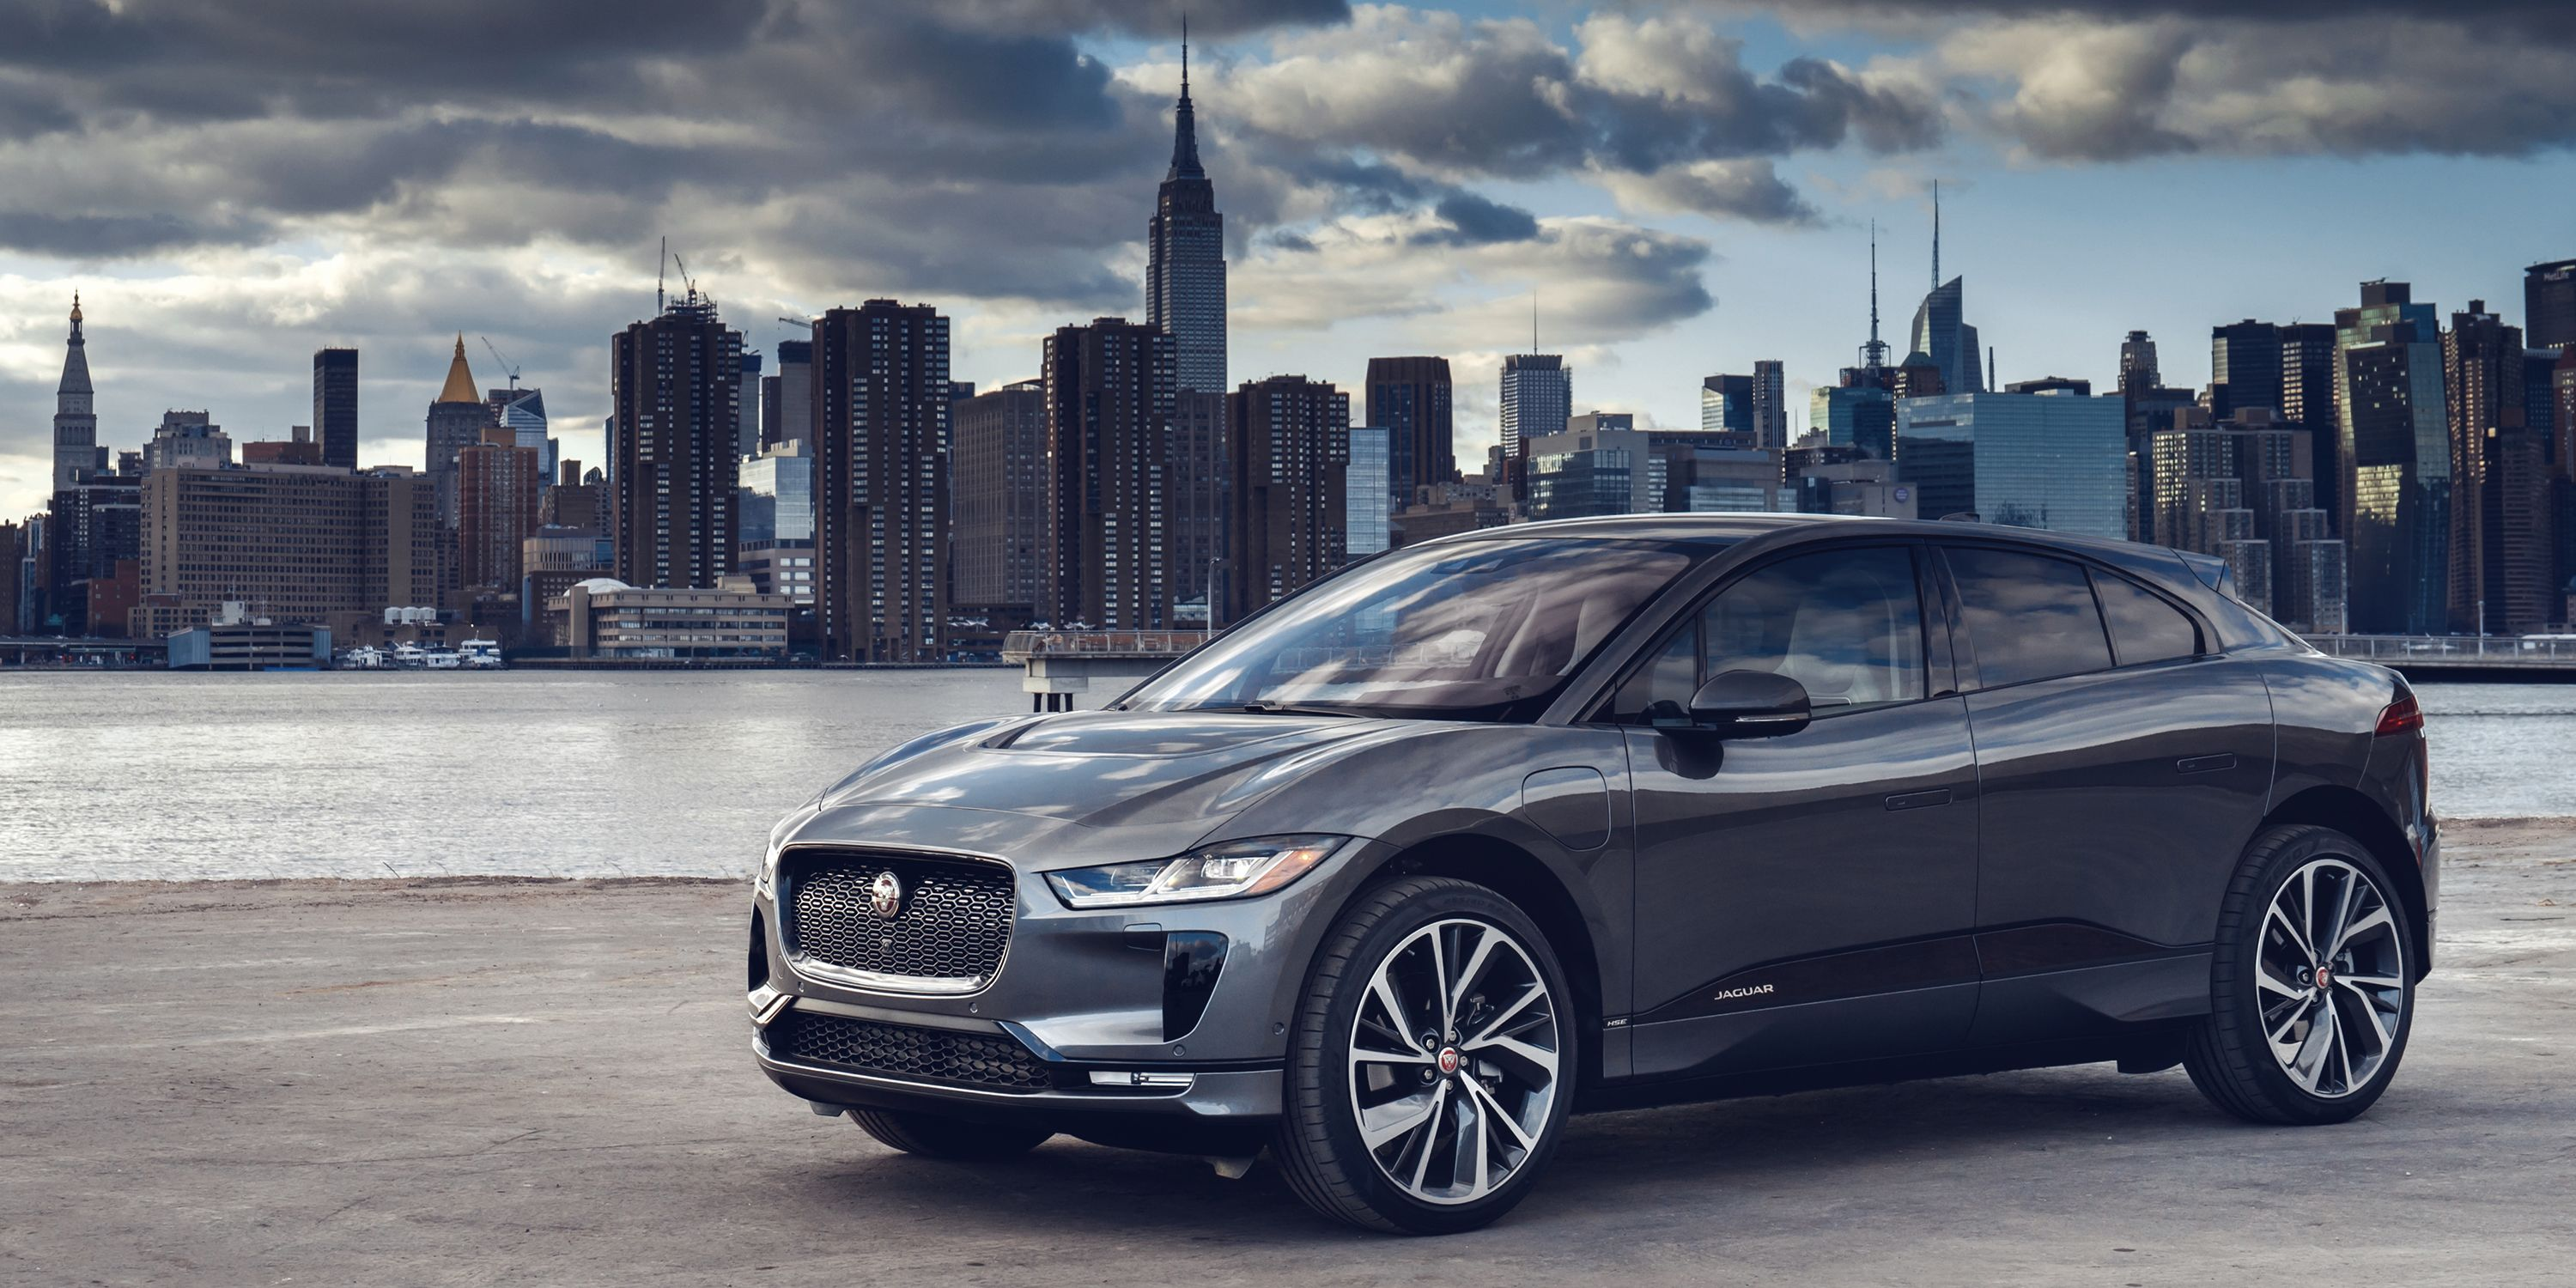 crossover style new around exterior and f img pace suv interior walk body jaguar